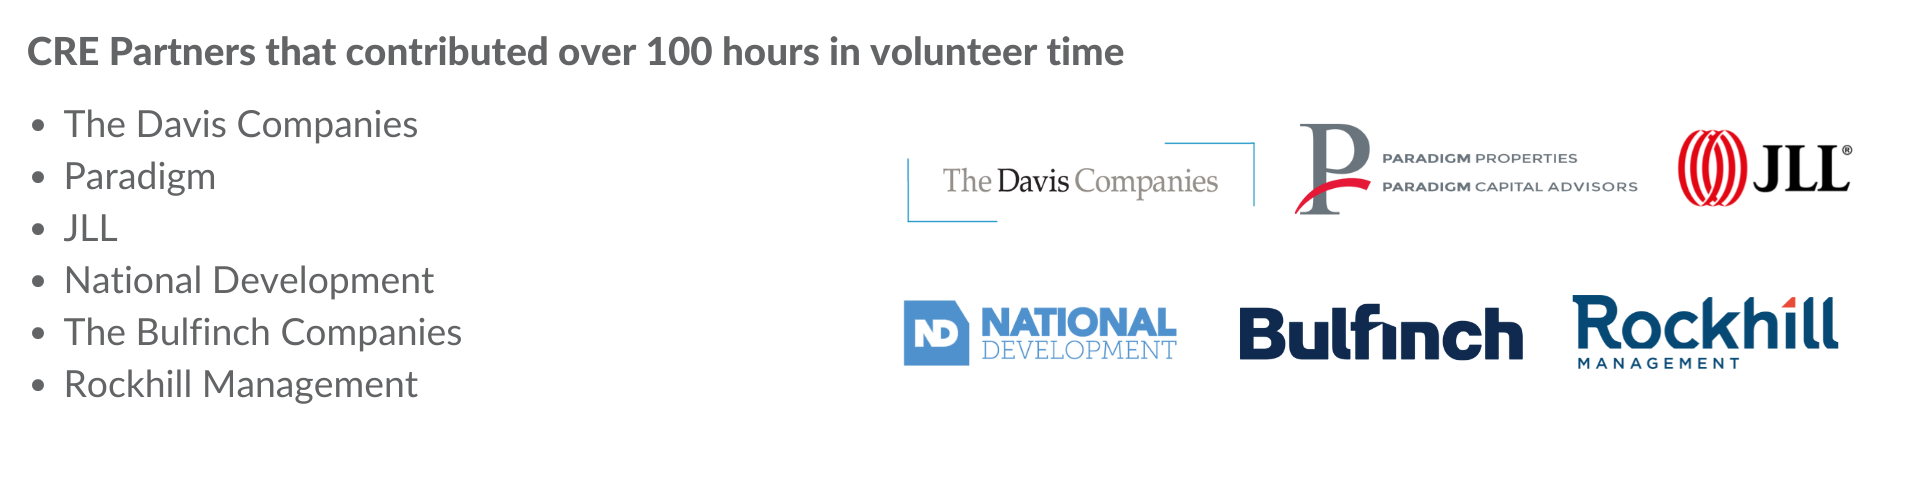 CRE Partners that contributed over 100 hours in volunteer time: The Davis Companies, Paradigm, JLL, National Development, The Bulfinch Companies, Rockhill Management